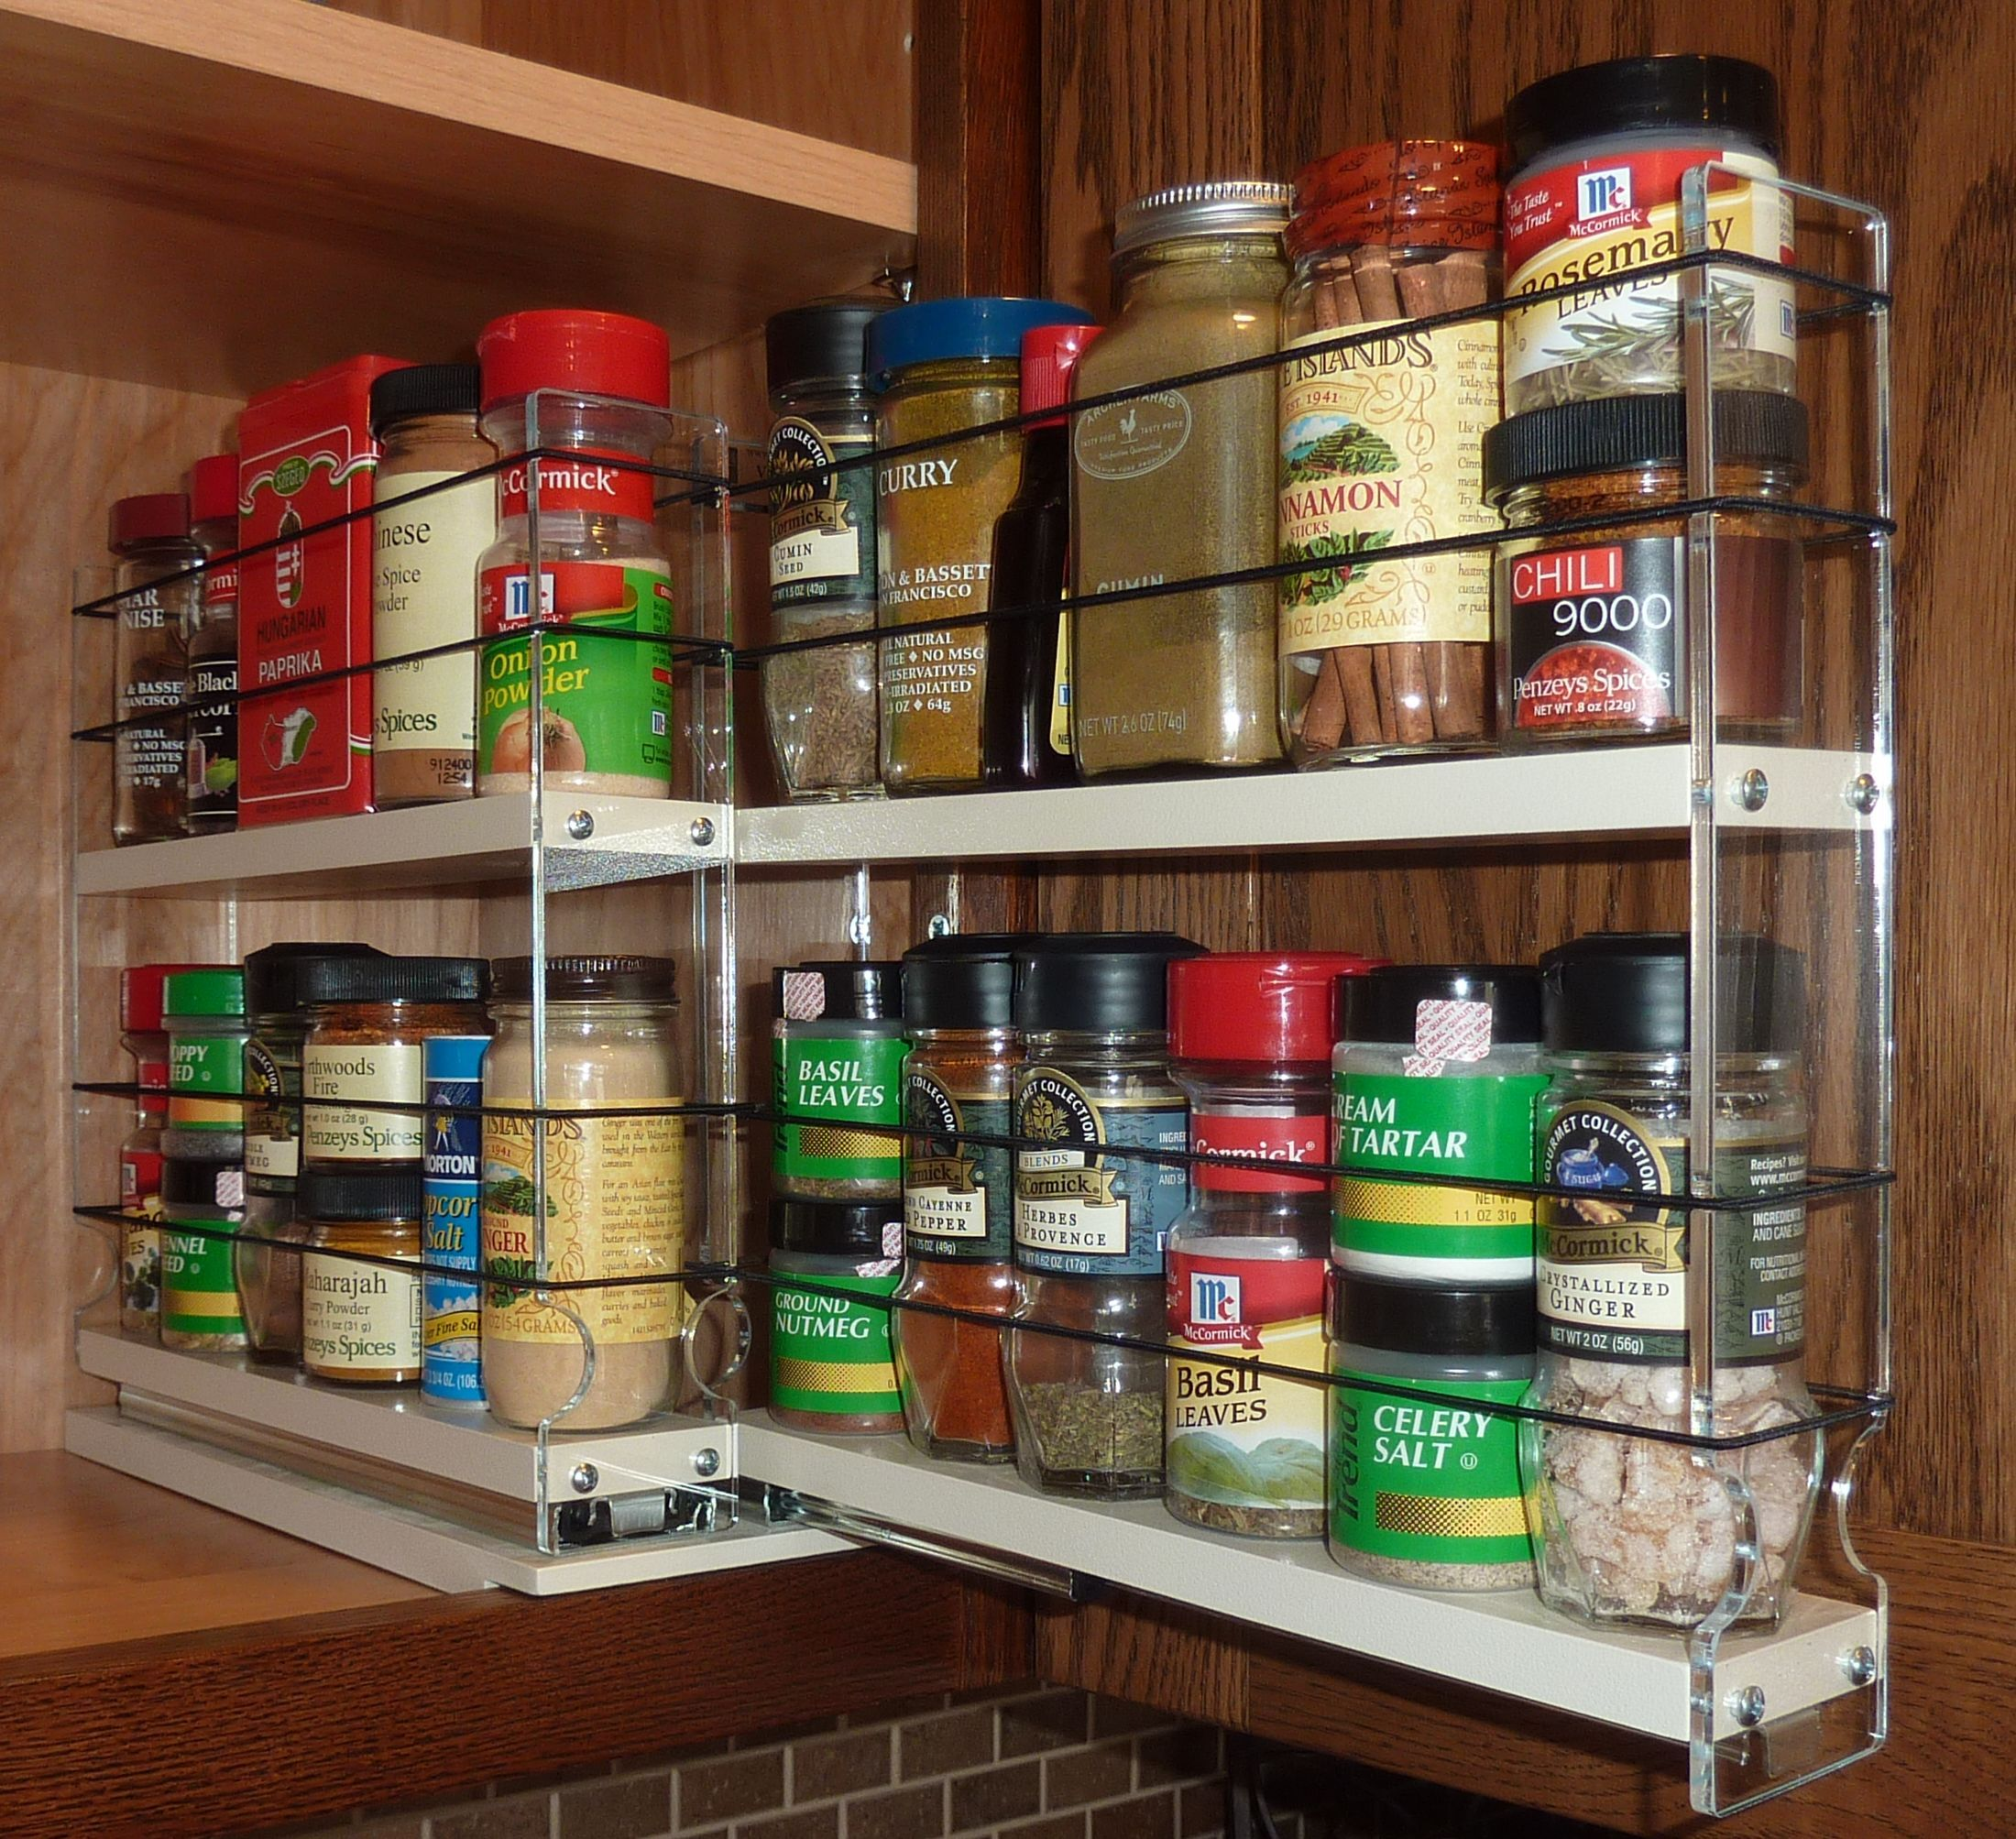 Cabinet Door Spice Racks Pull Out Spice Racks Spice Rack Drawer